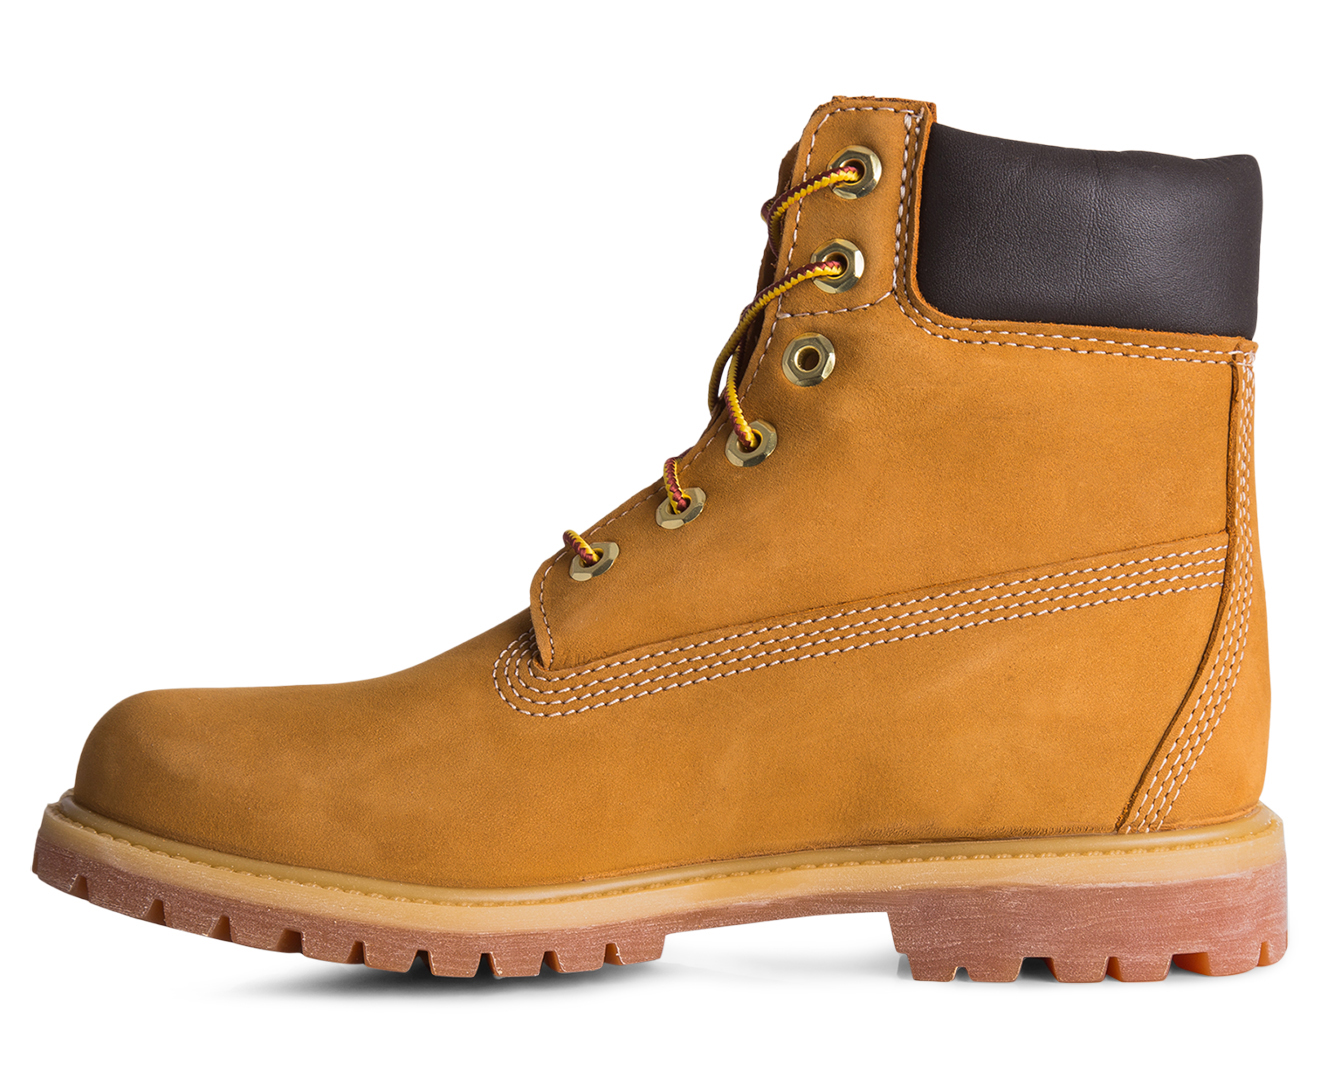 discounted Timberland Premium Low Top Boots, Total sale